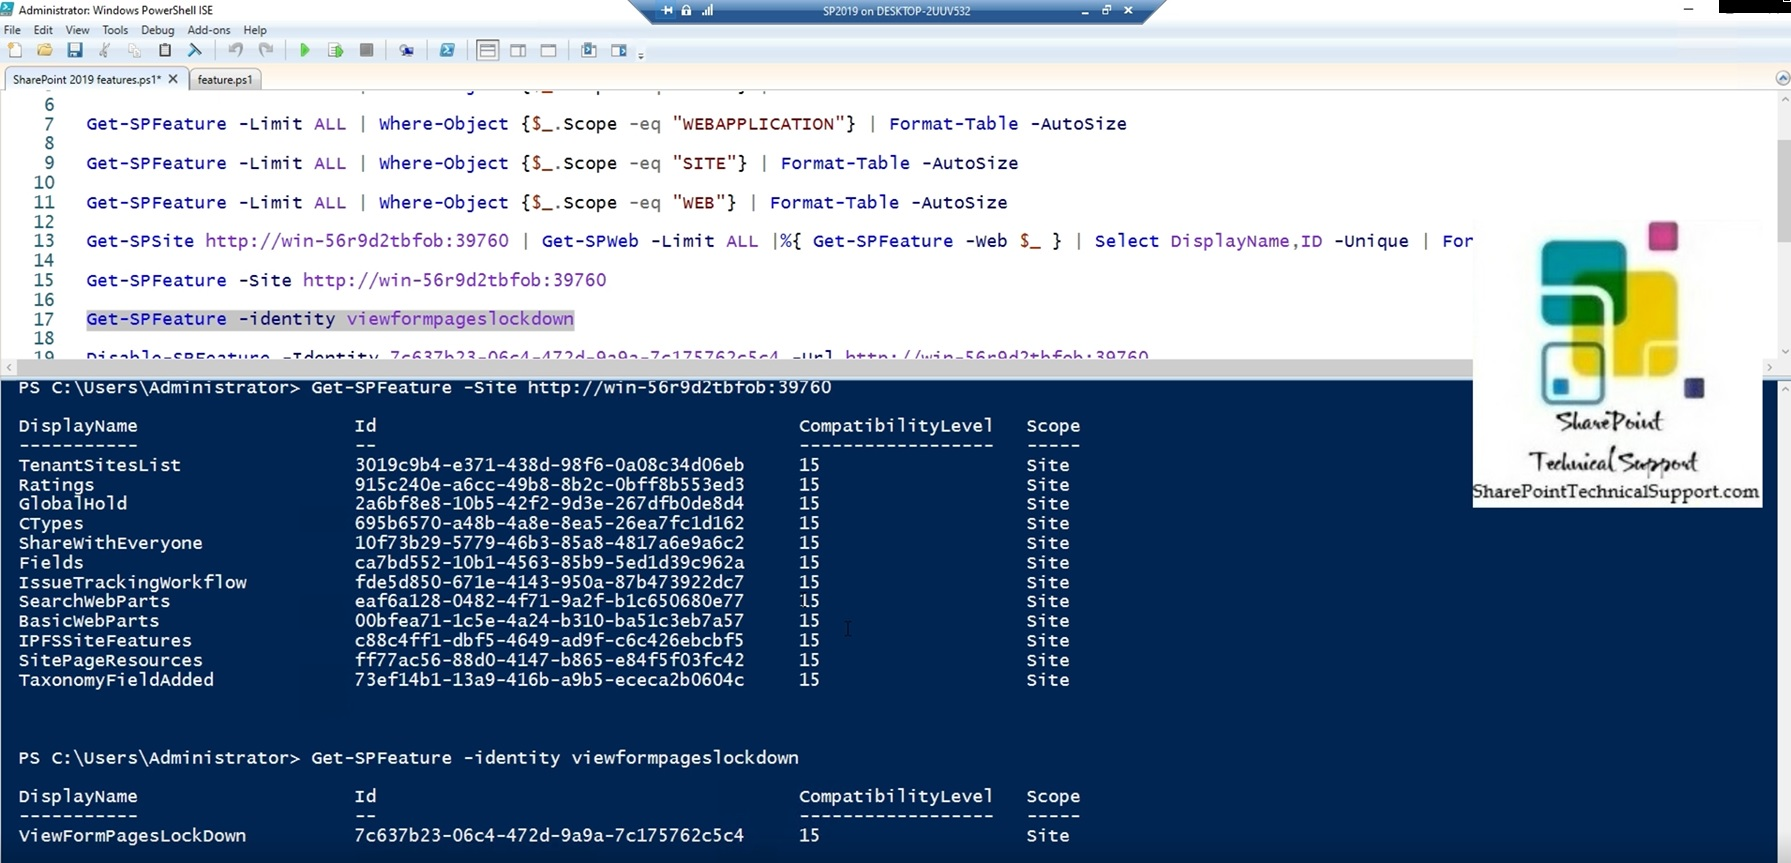 SharePoint 2019 feature id of one feature